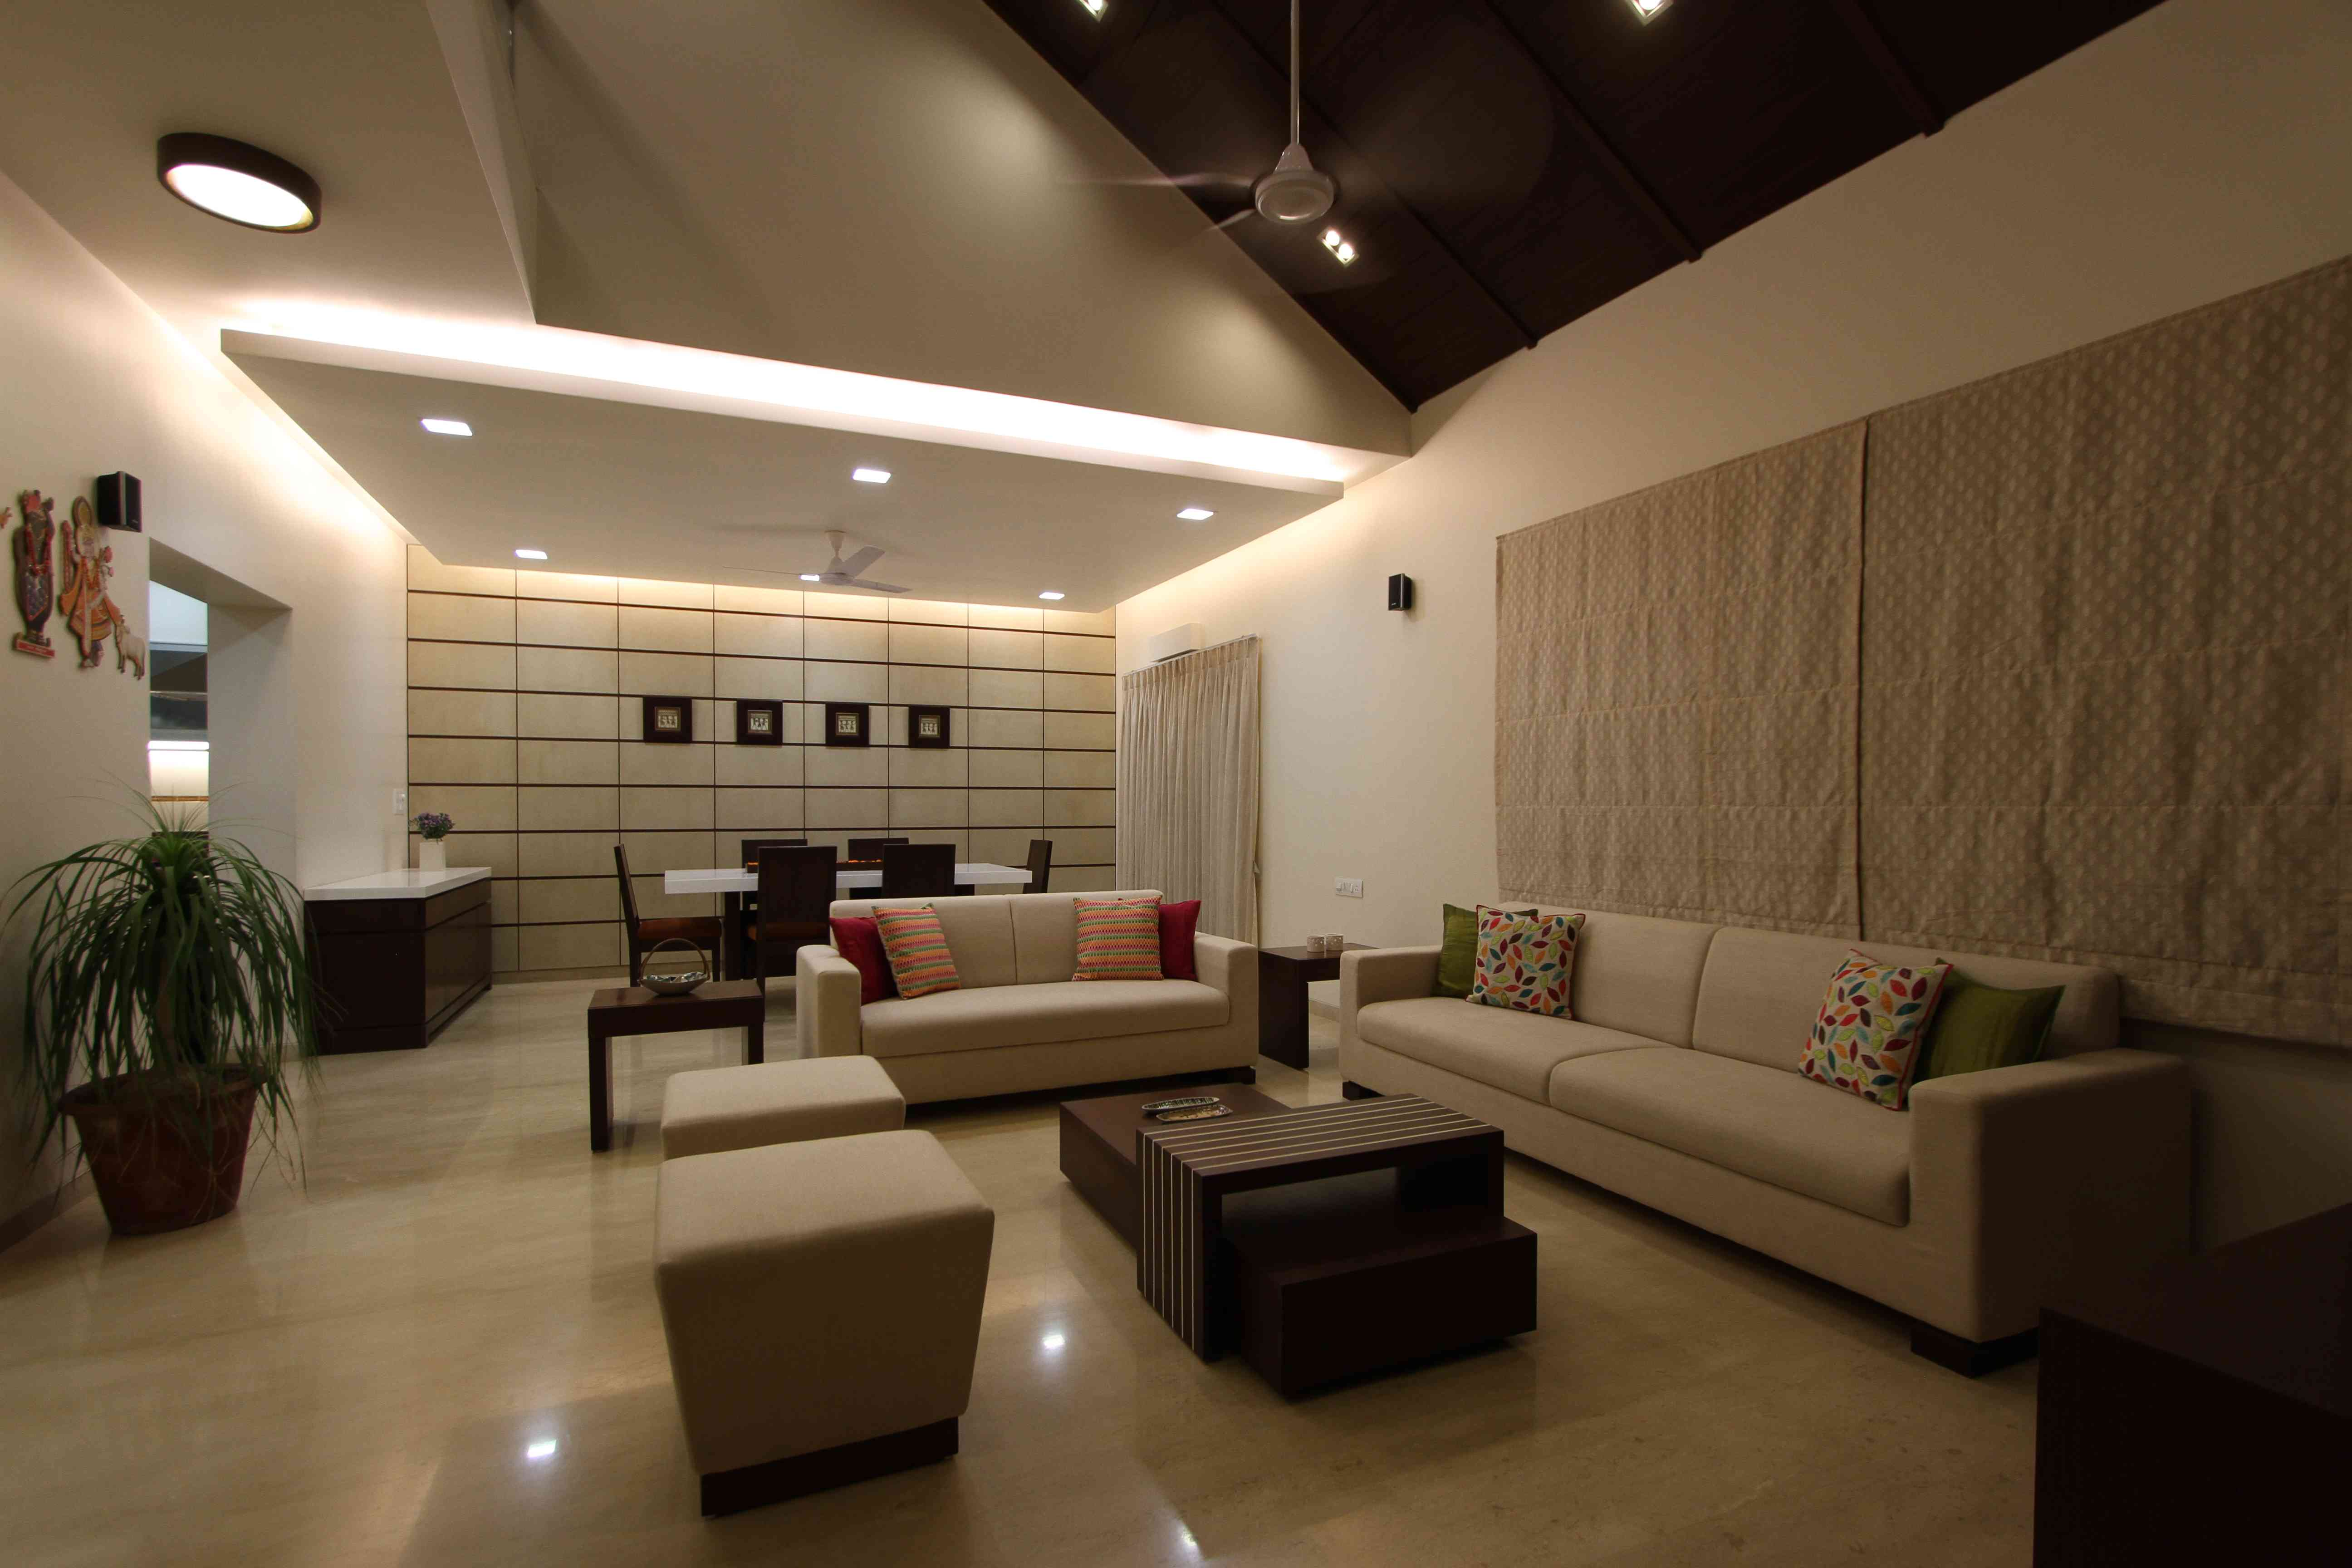 False ceiling design ideas false ceiling interior designs for Living dining room designs